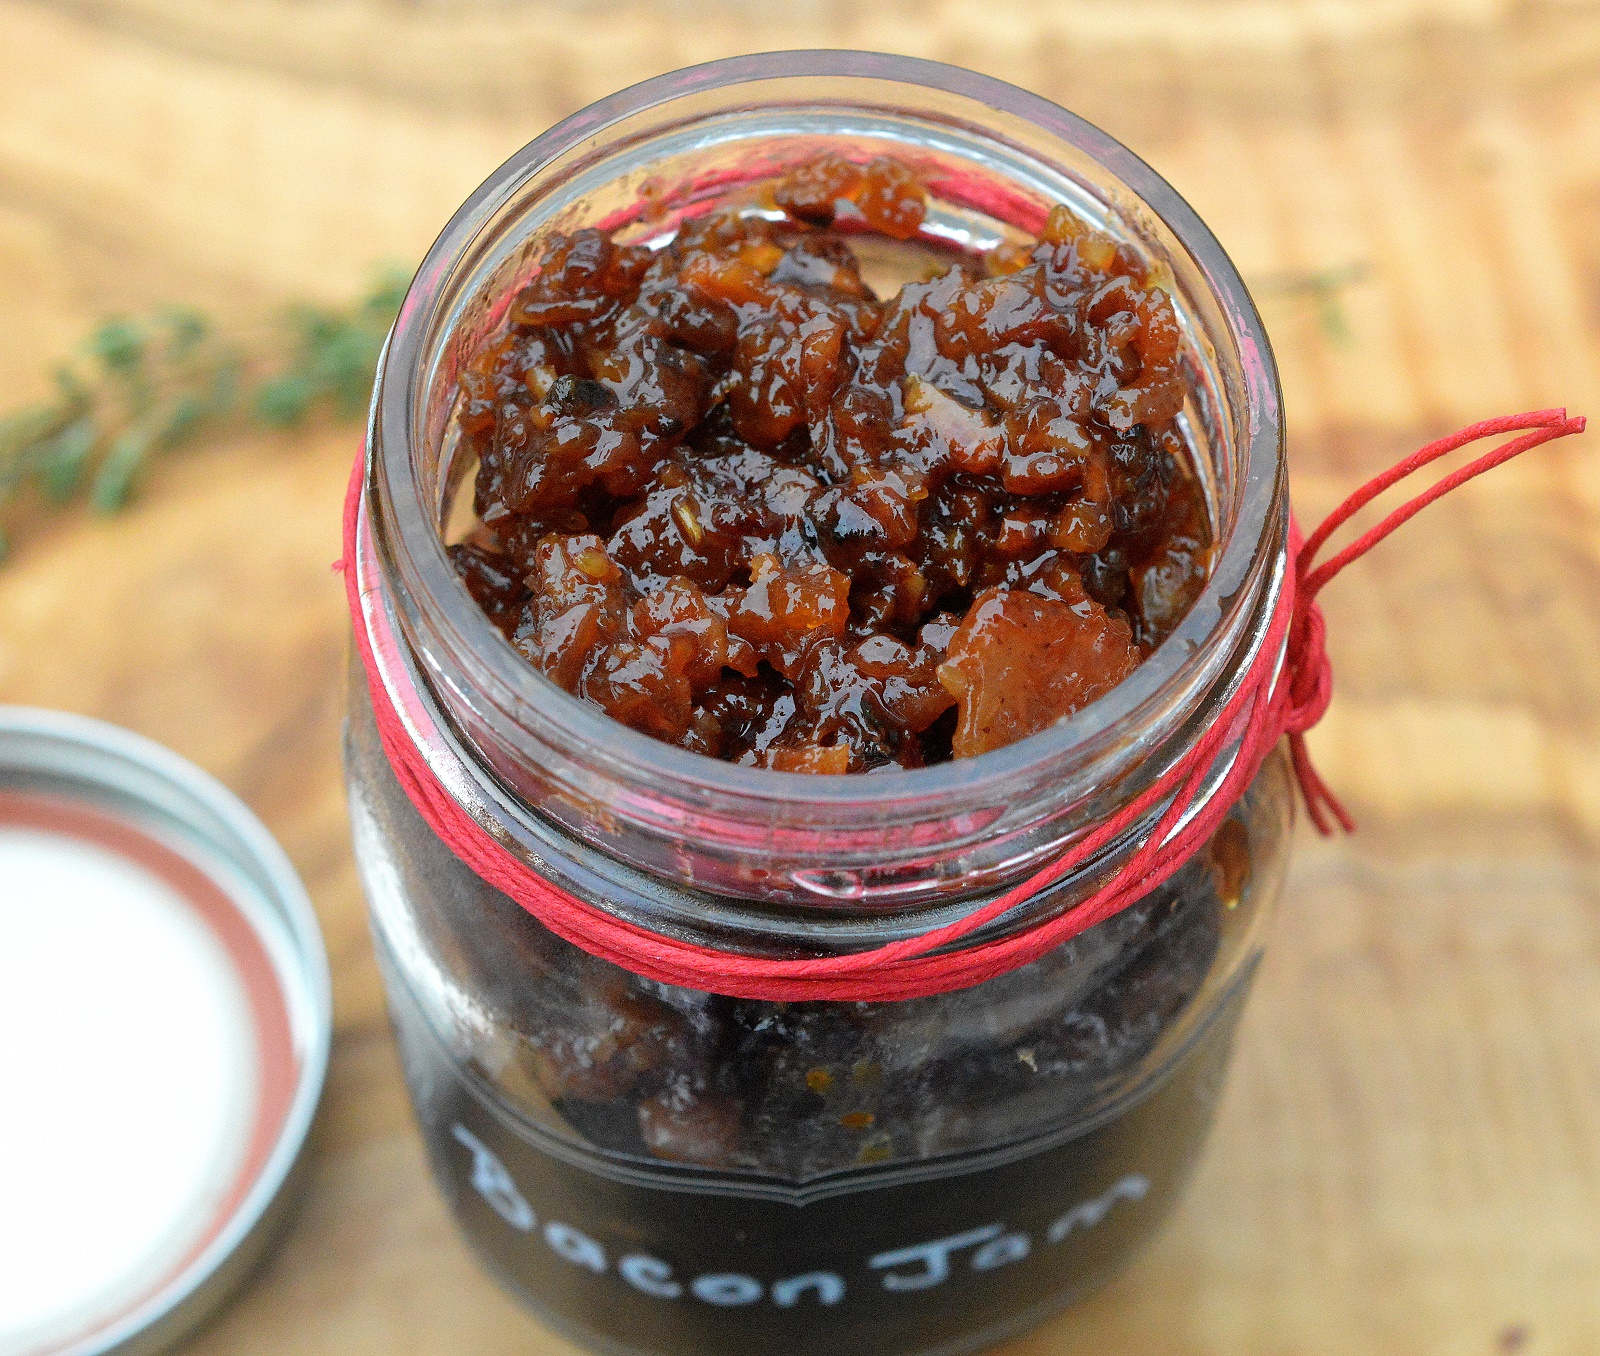 Bacon Jam is ridiculously delicious and different! Good on so many things!